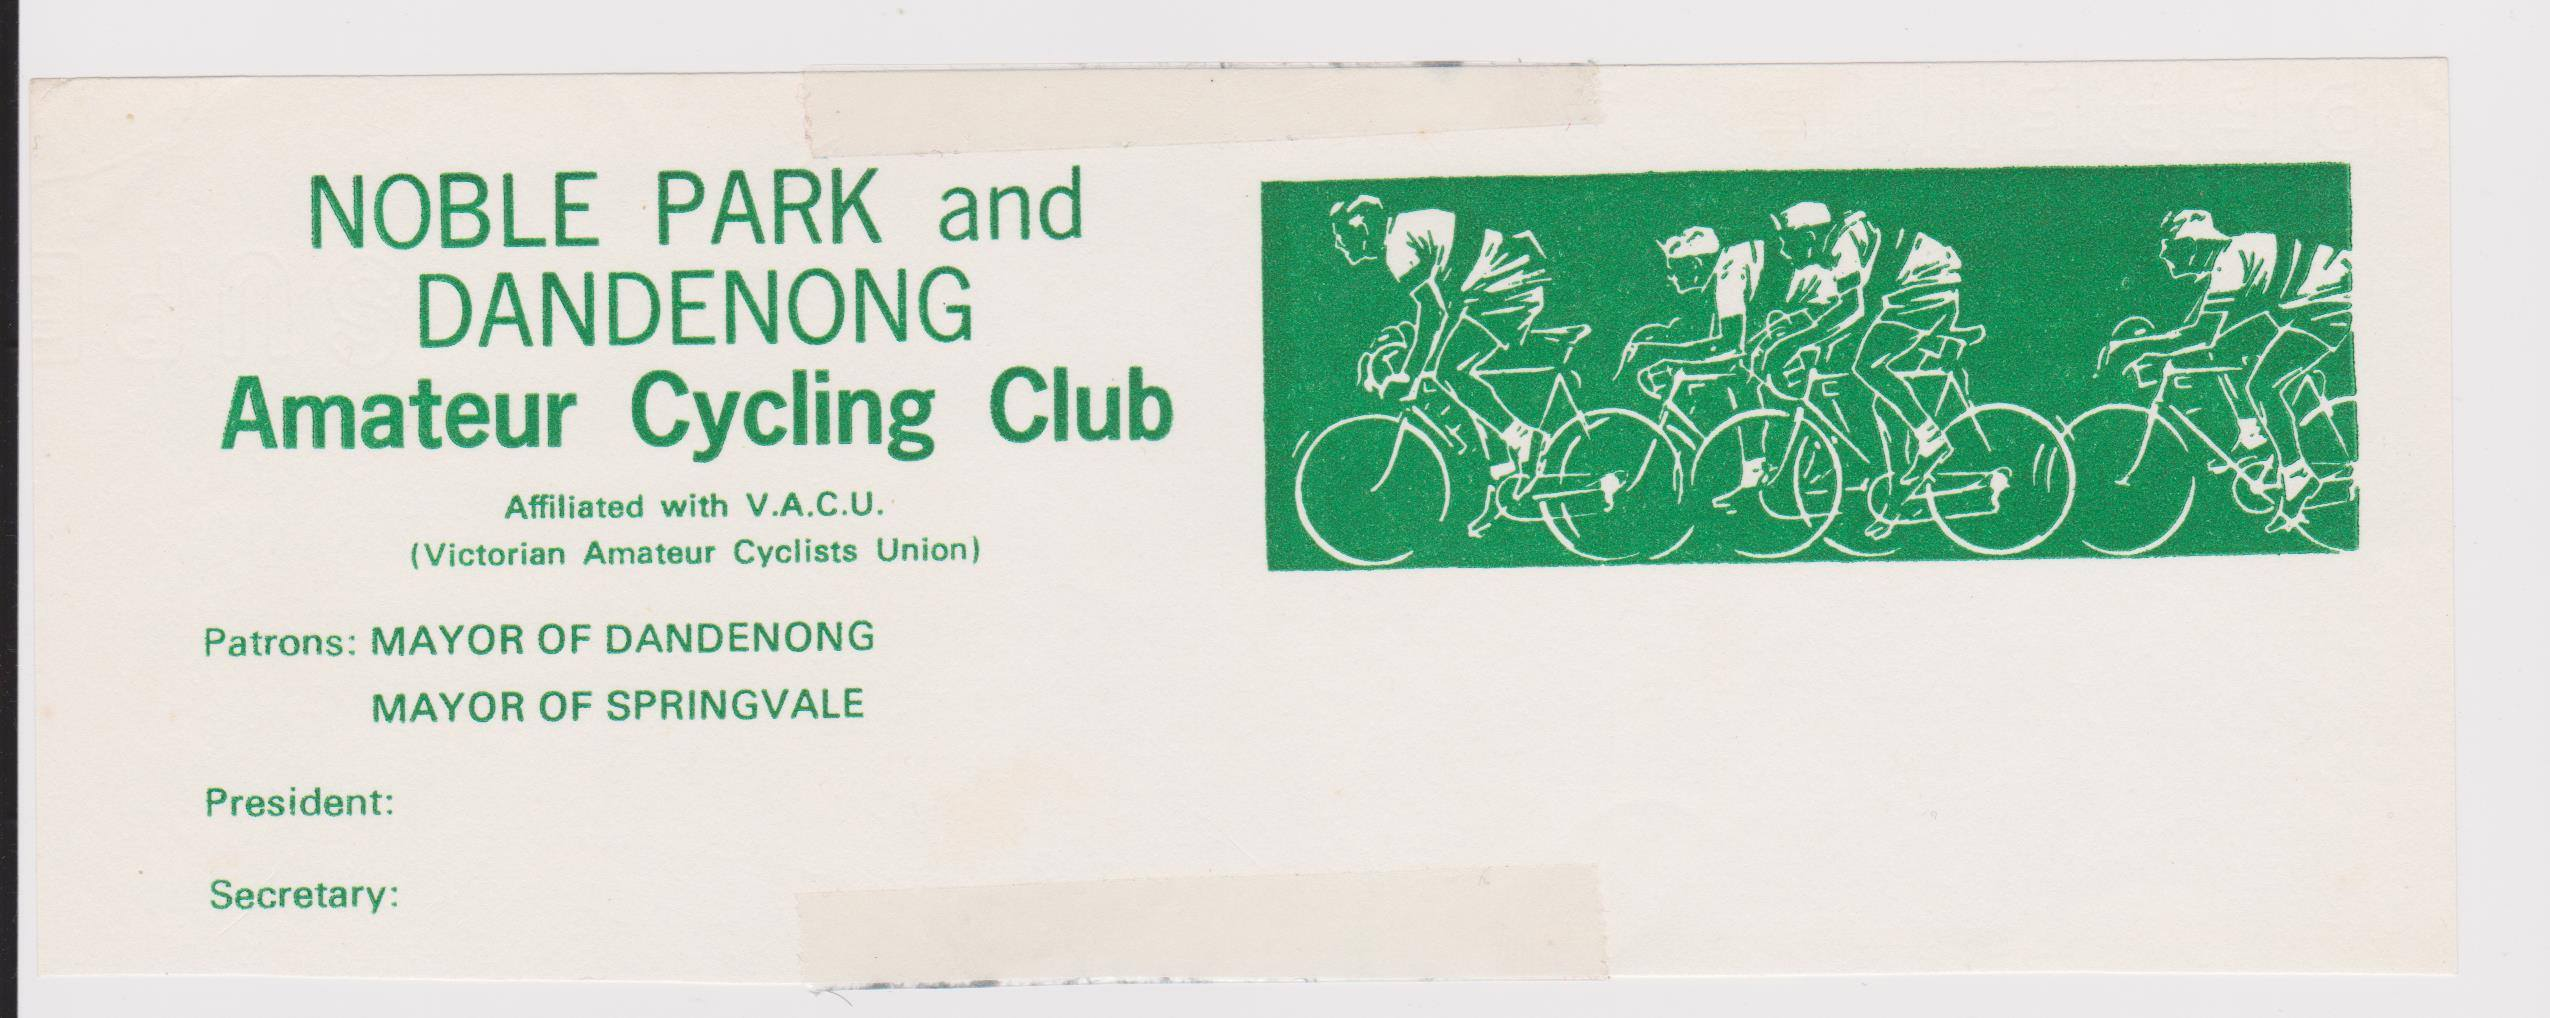 Noble Park and Dandenong Amateur Cycling Club Letterhead